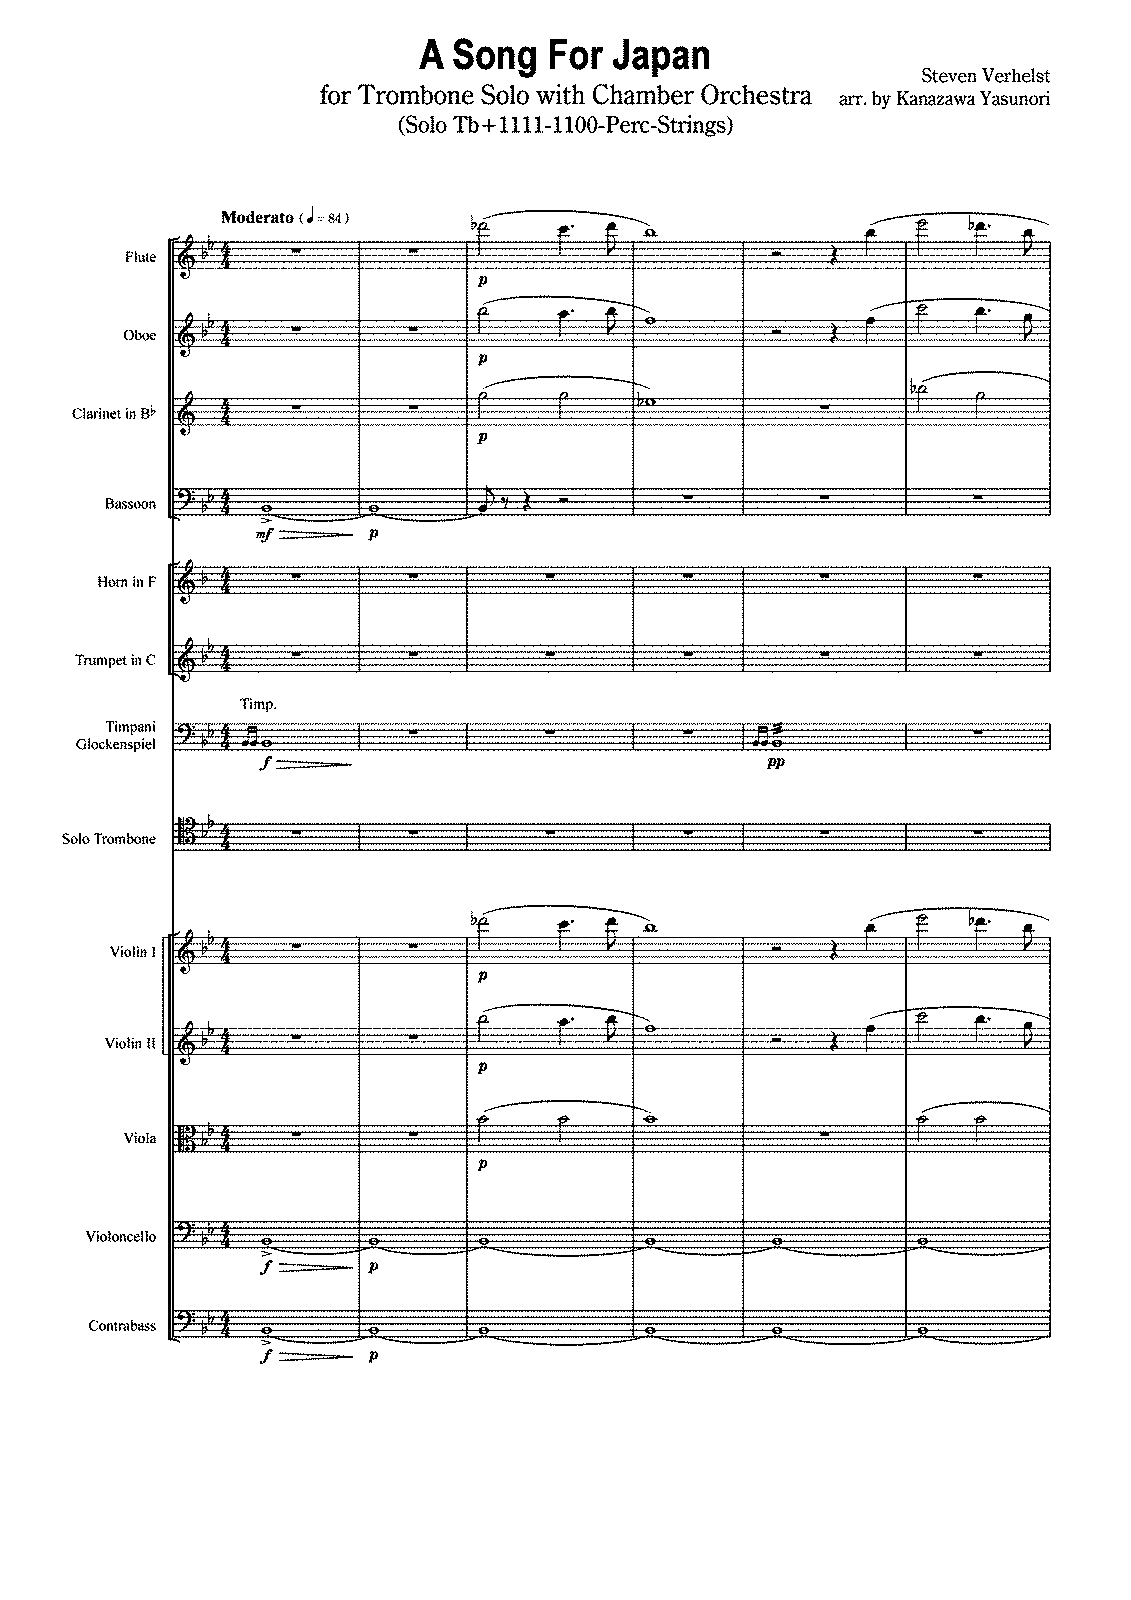 PMLP241675-A Song For Japan(Solo Tb+1111-1100-Perc-Strings).pdf